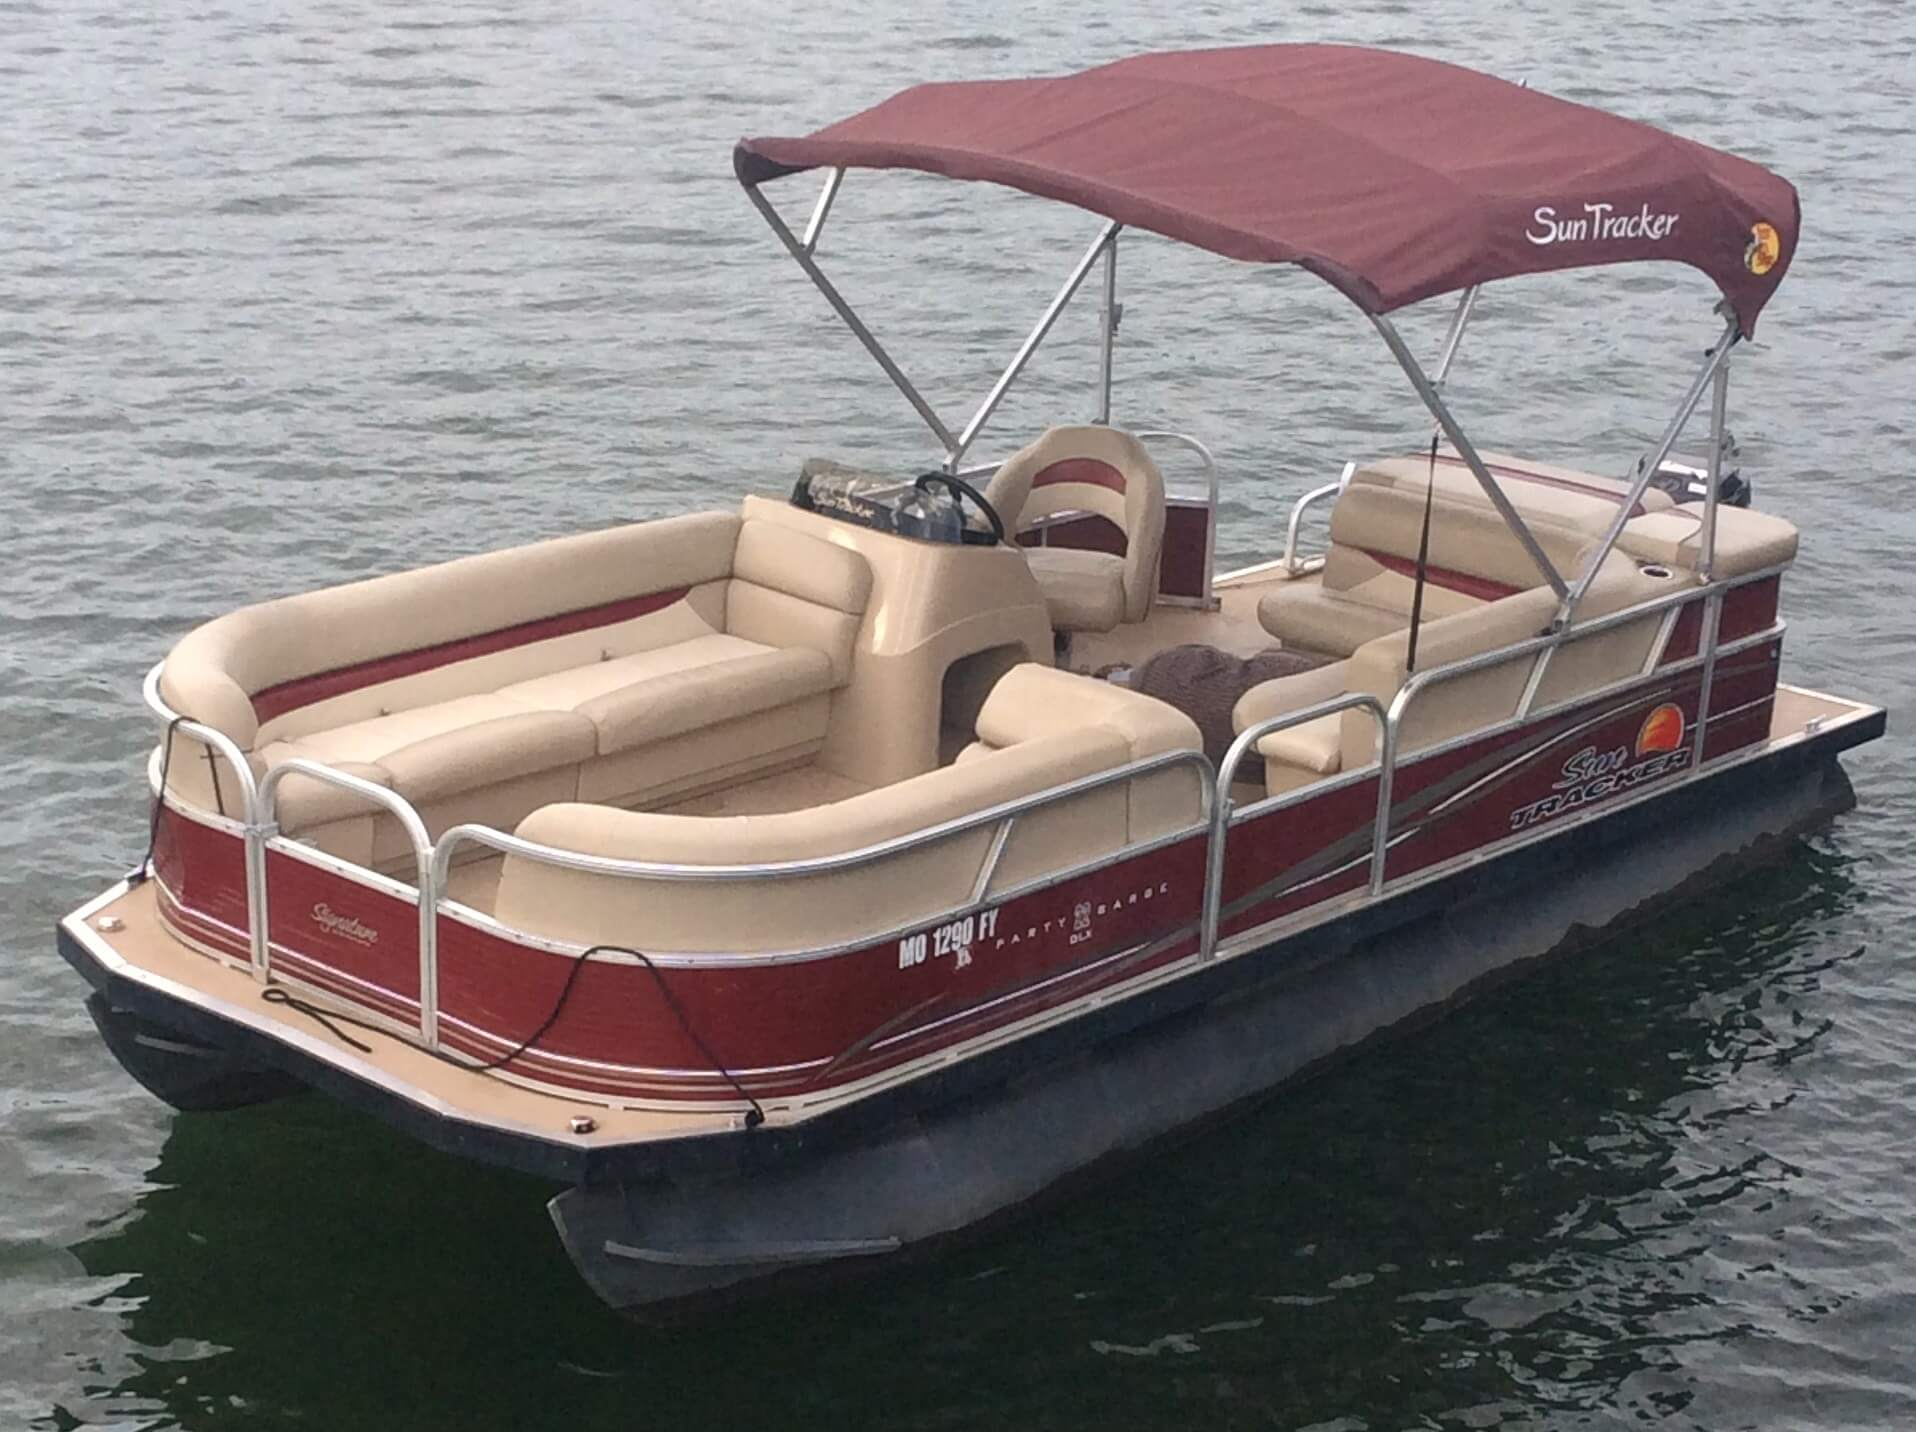 Sun Tracker 22 foot Deluxe Pontoon boats